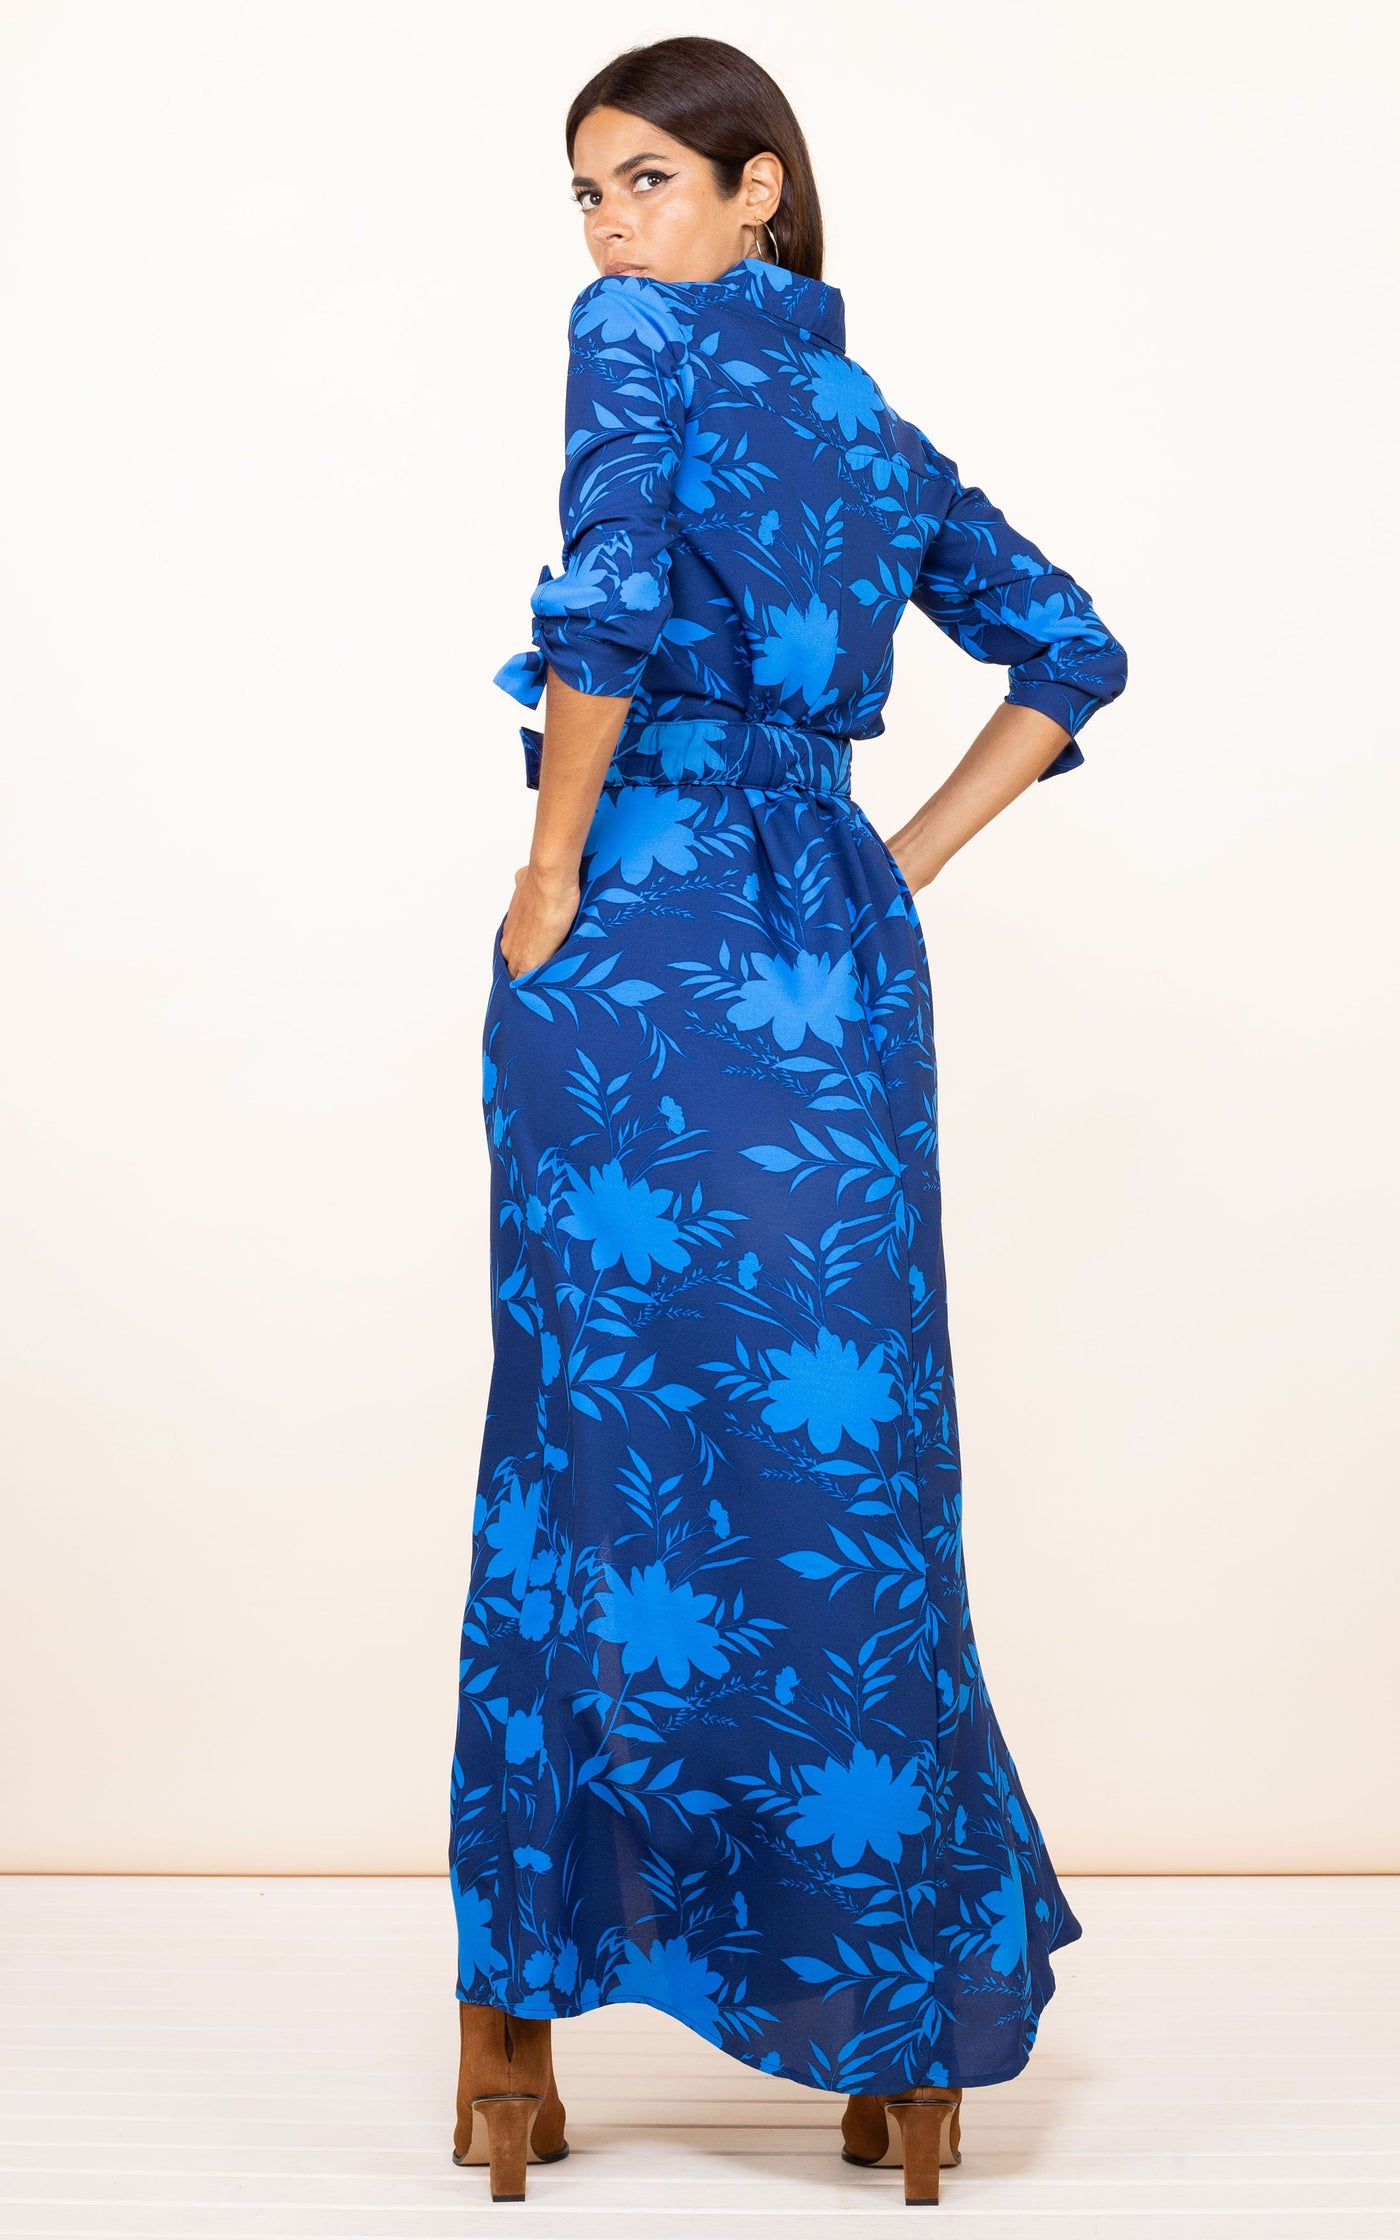 Dancing Leopard model faces backwards wearing Dove Dress in Dark Blue Silhouette Ground